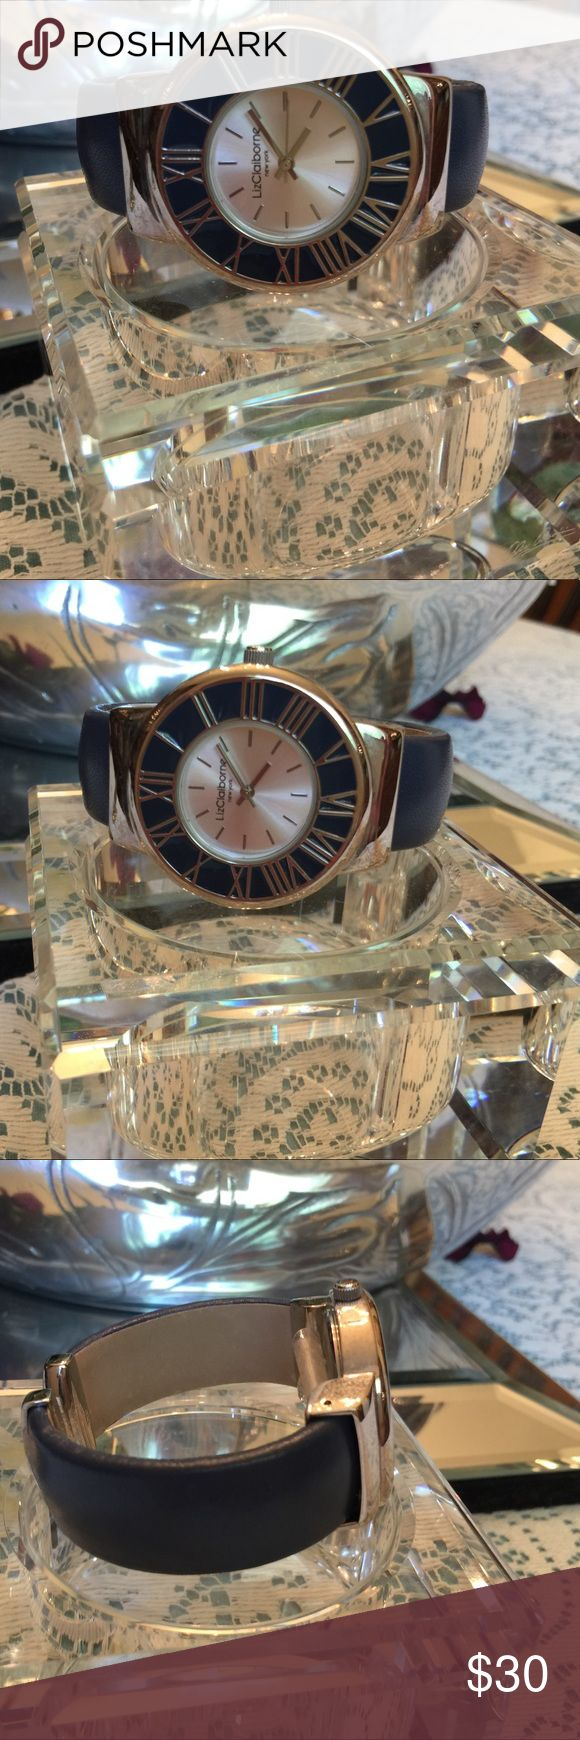 Liz Claiborne Watch This is navy blue leather and silver.  Bangle expands.  Needs new battery.  By Liz Claiborne New York 🎀🎀 Liz Claiborne New York Accessories Watches